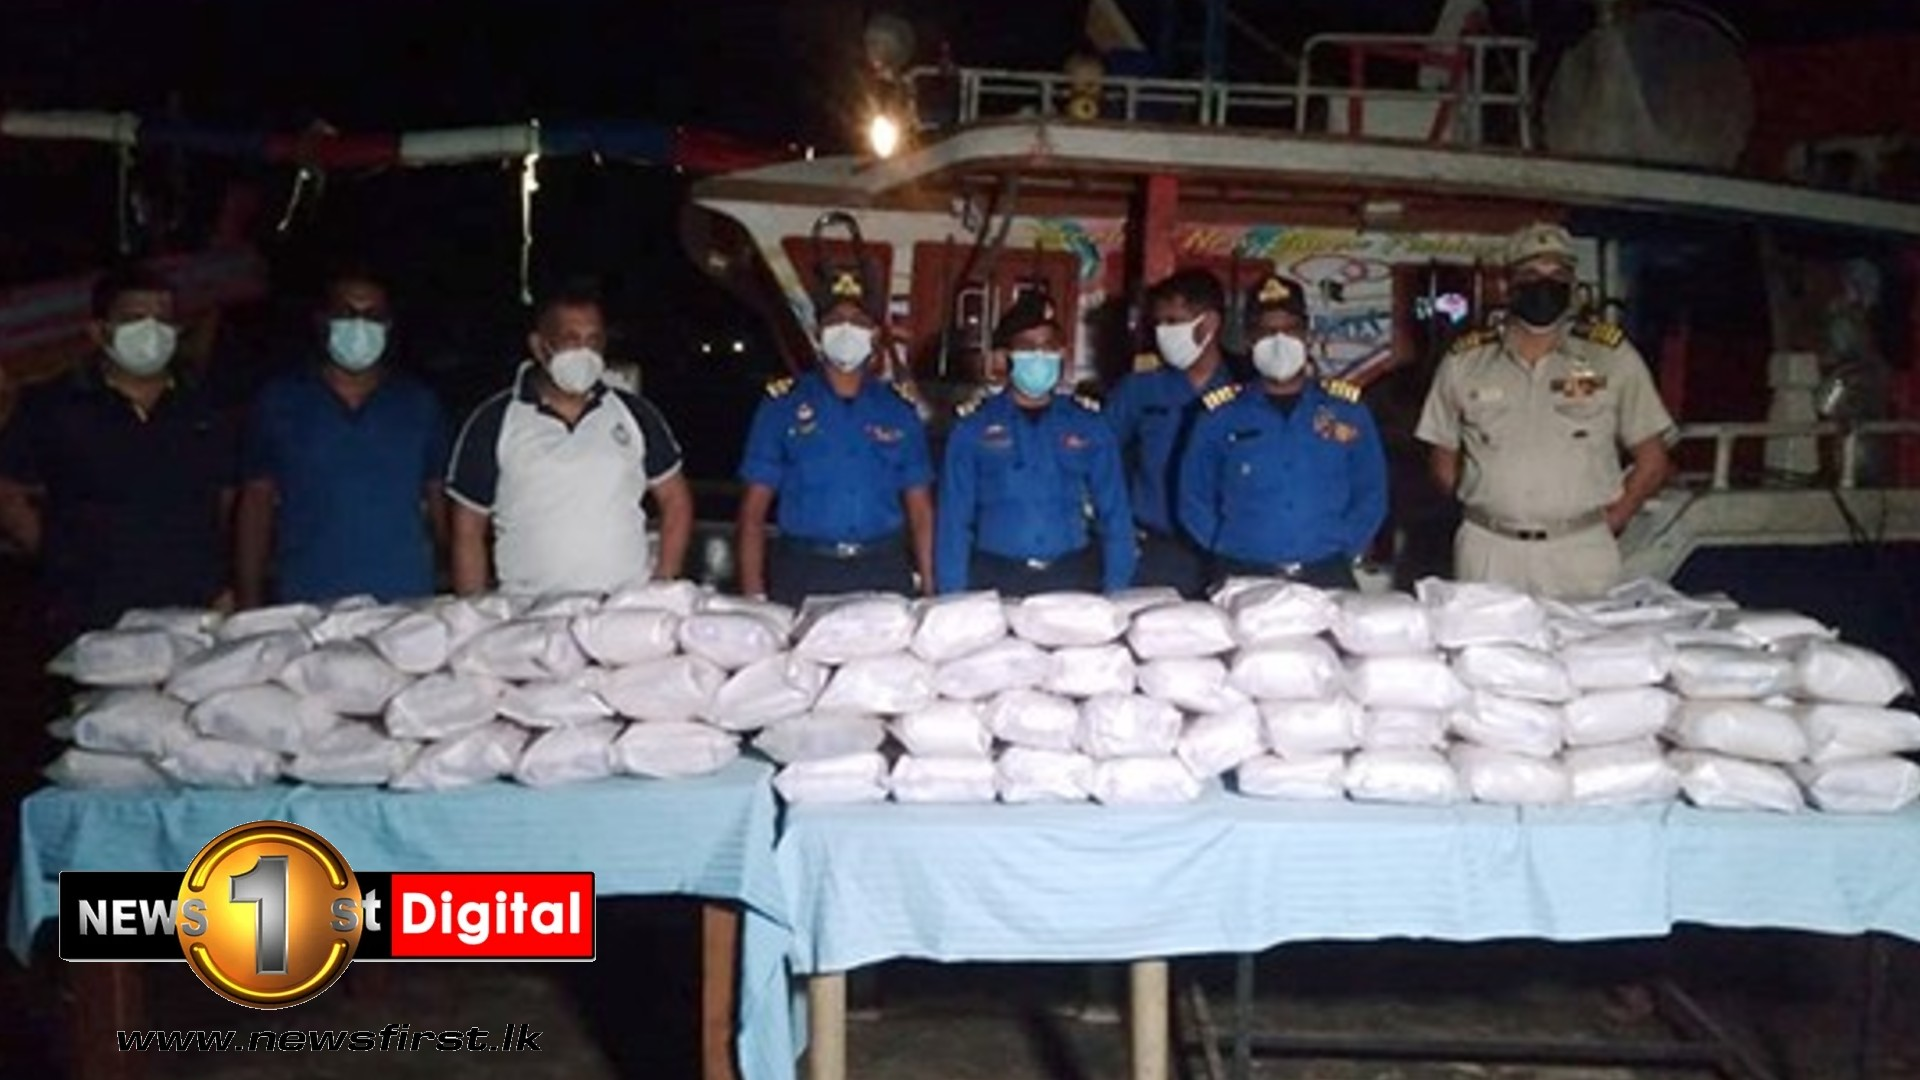 Over 290 kg of heroin valued at Rs. 2.3 Billion seized from fishing trawler in Southern Seas